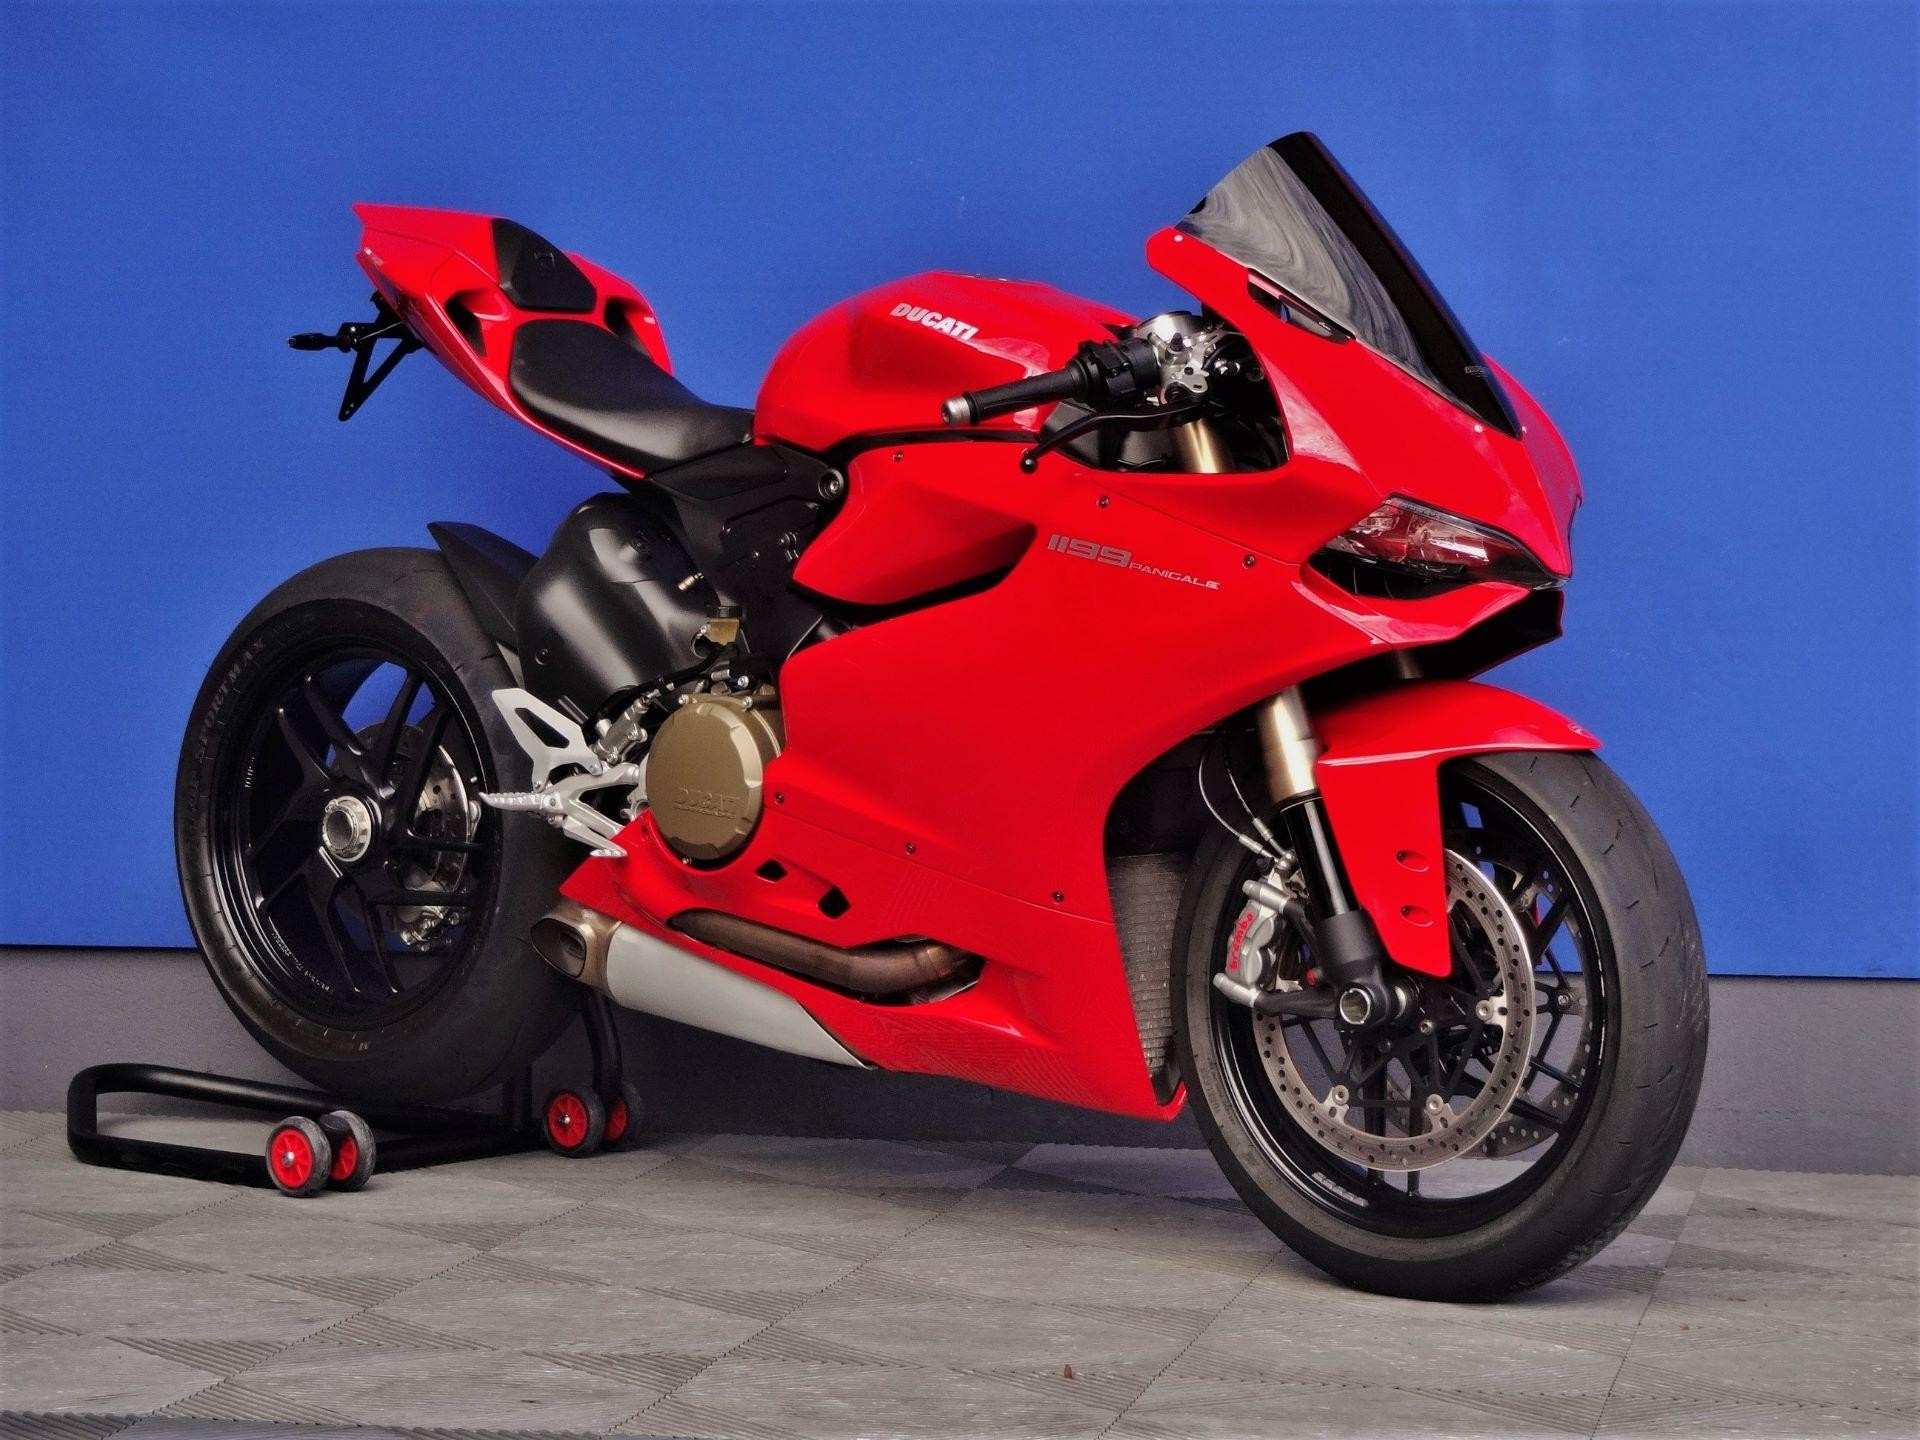 motorrad occasion kaufen ducati 1199 panigale vogel. Black Bedroom Furniture Sets. Home Design Ideas